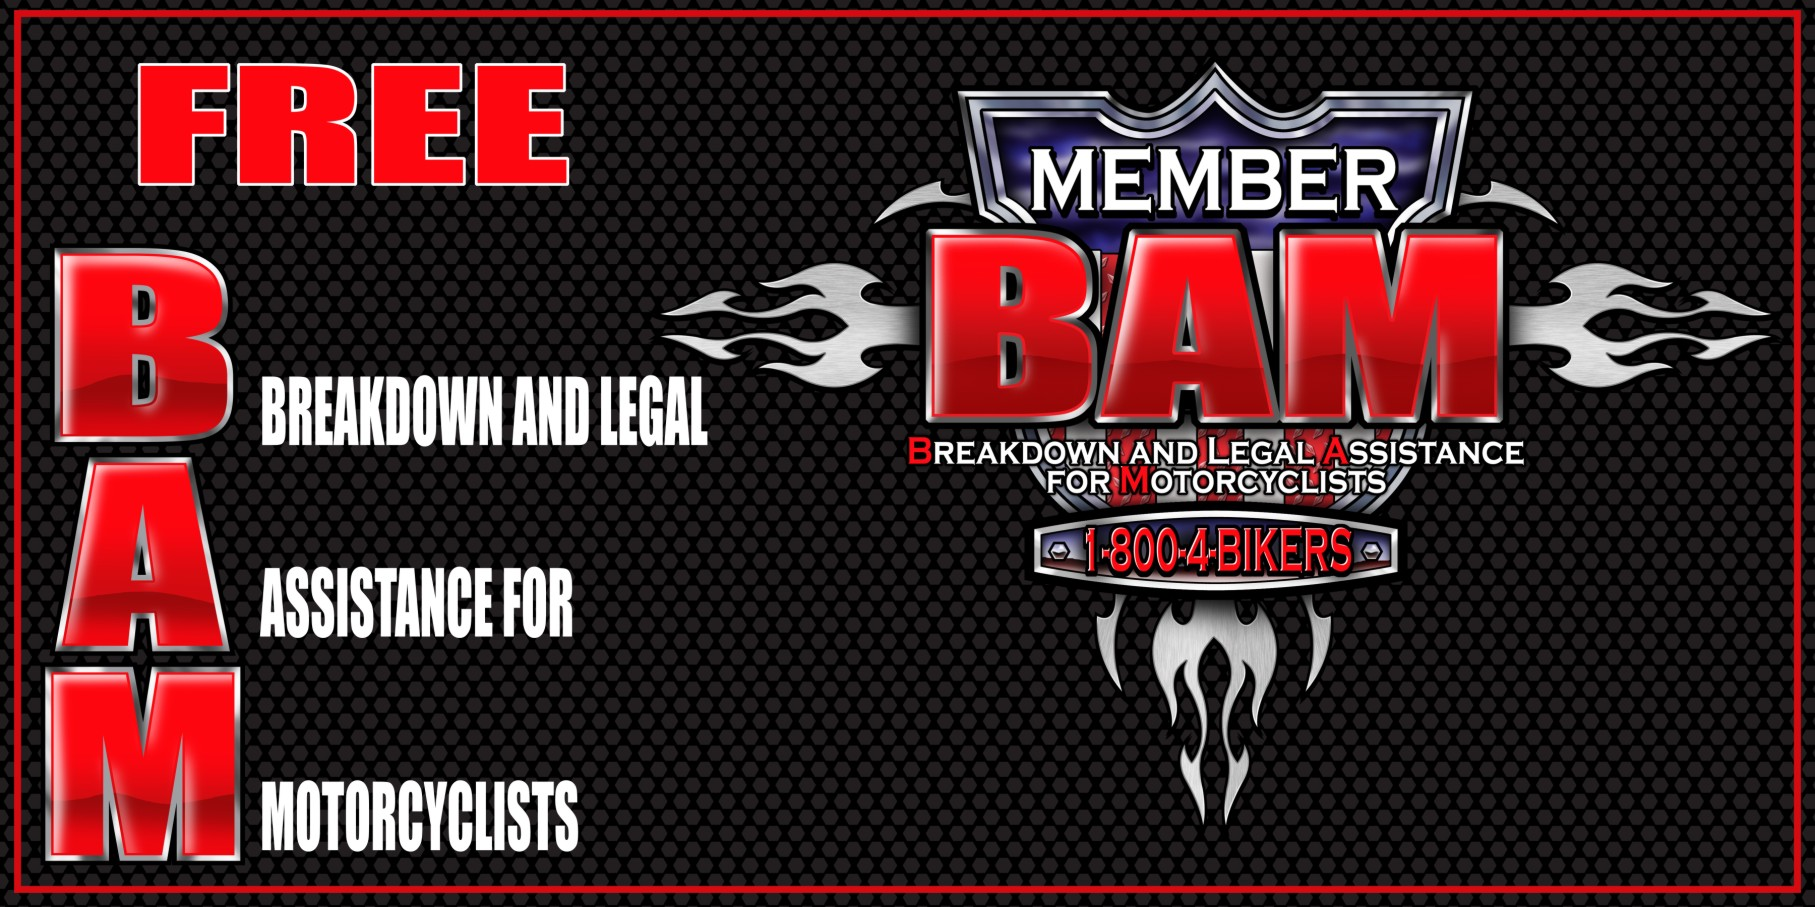 BAM Motorcycle Lawyers Ohio